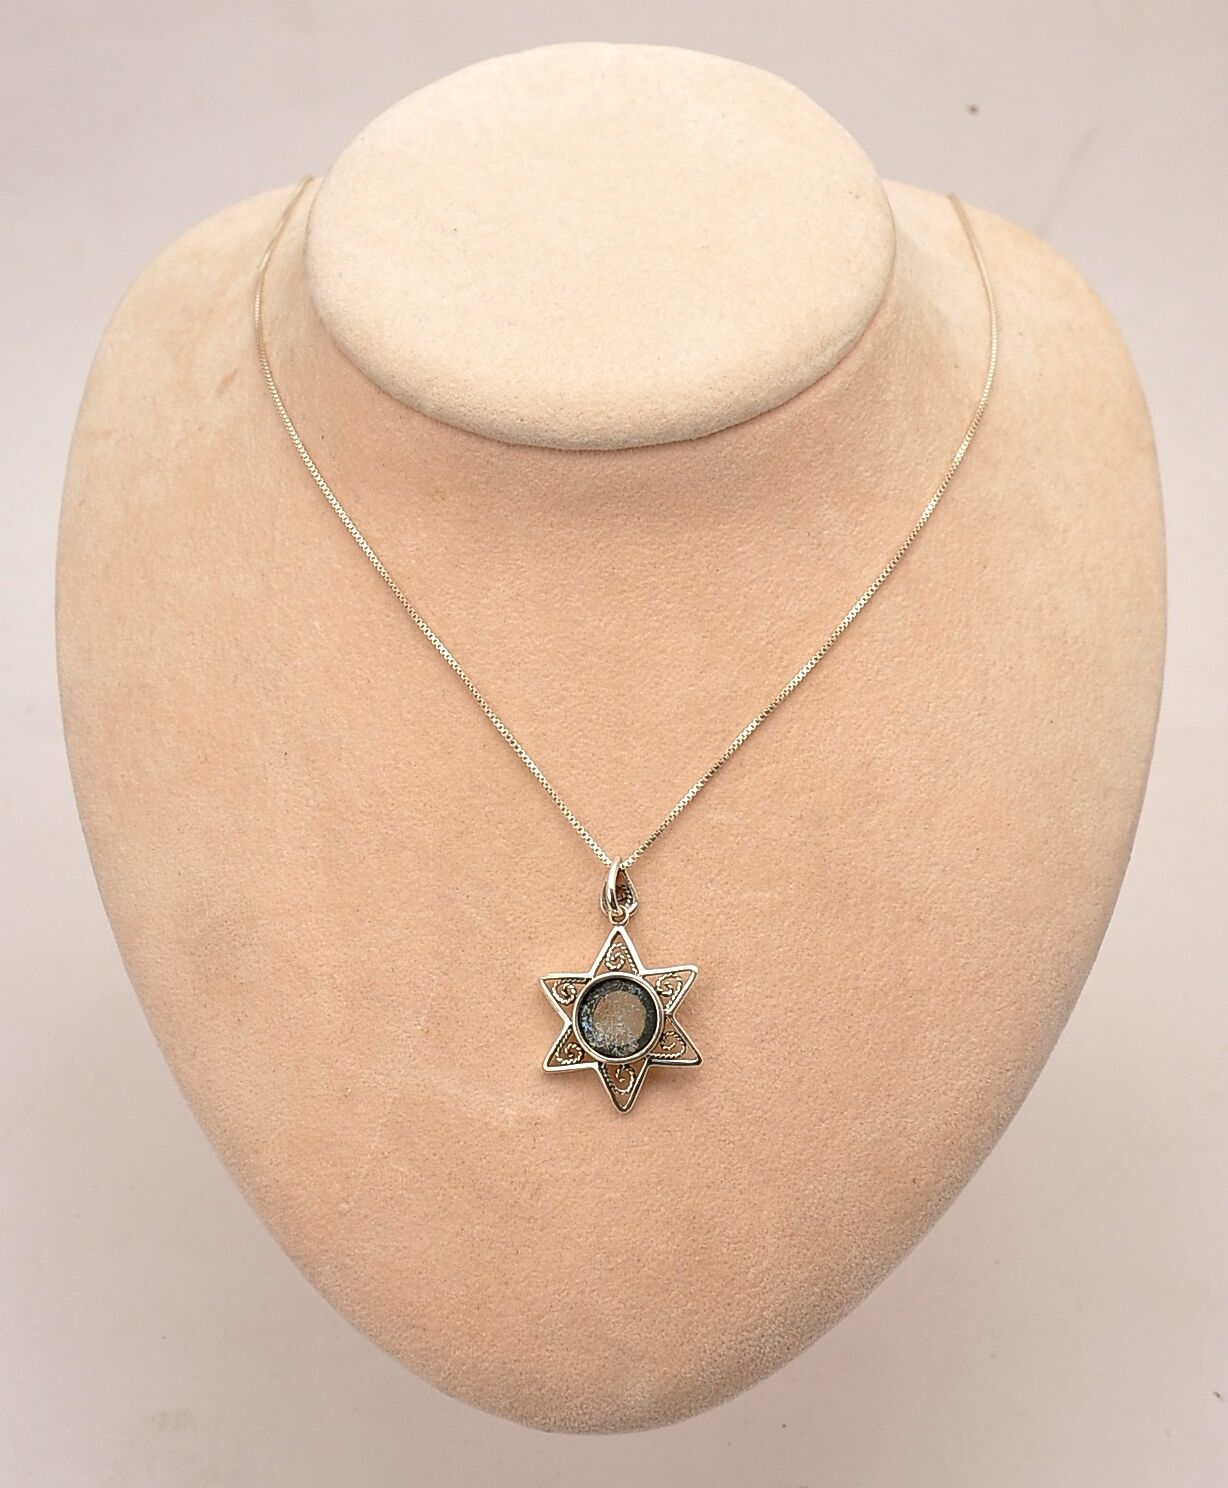 Roman Glass Small Magen David In Necklace Sterling Silver 925.